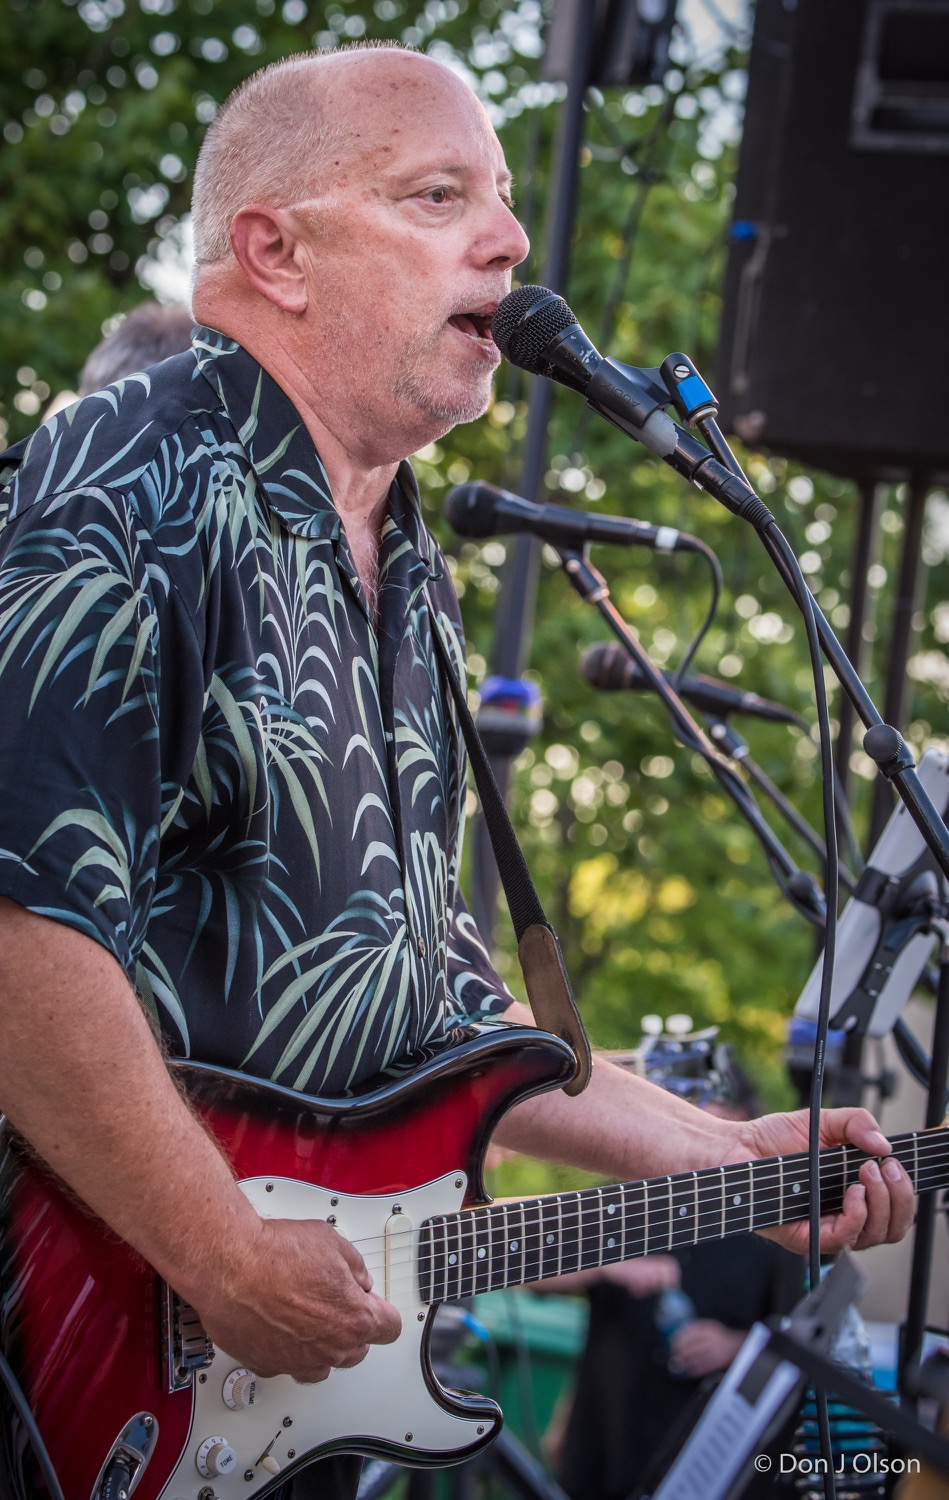 Kenny Krona / The Veterans' Memorial Wolfe Park Amphitheater / St. Louis Park, Minnesota / August 1st, 2015